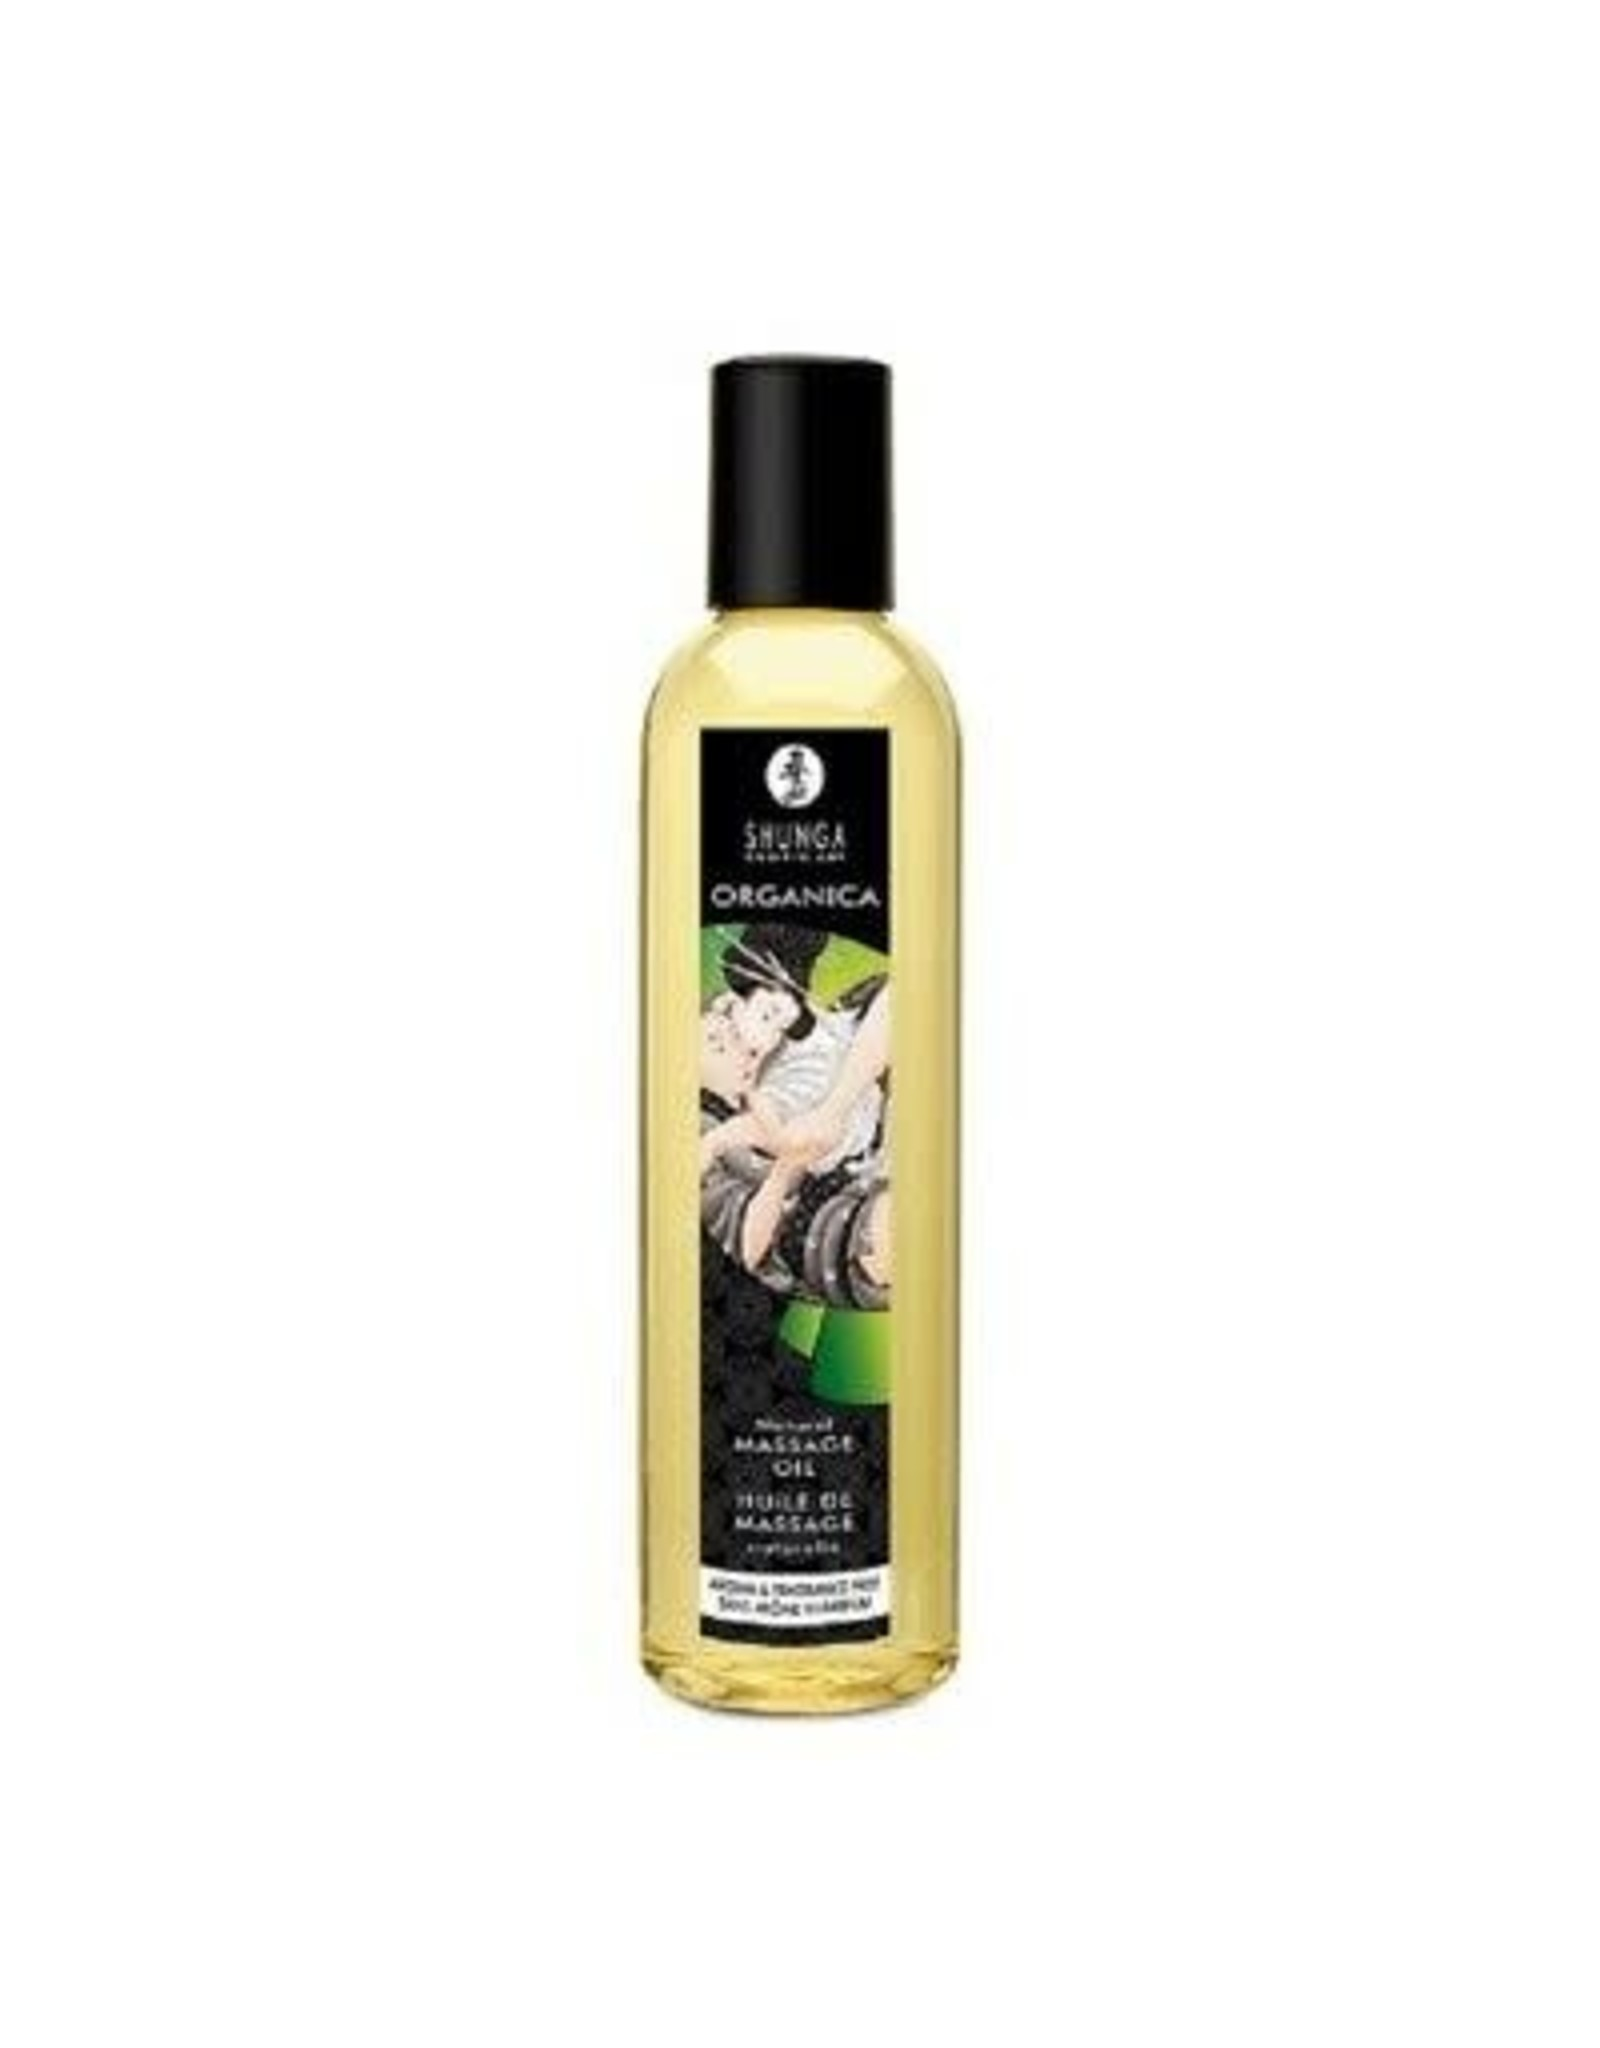 SHUNGA - ORGANICA KISSABLE MASSAGE OIL - FRAGRANCE FREE 8oz